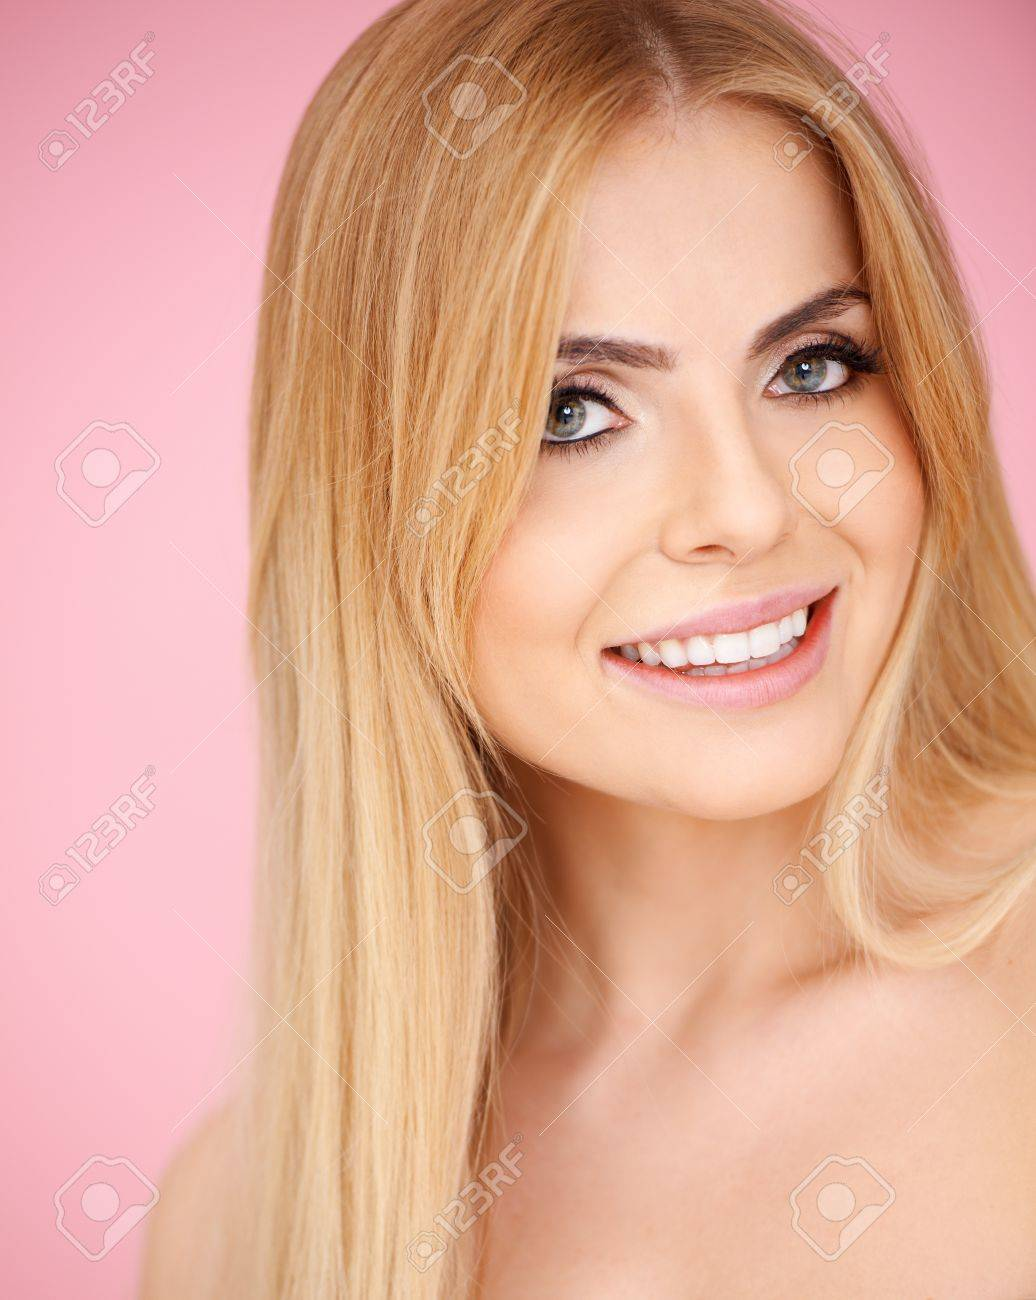 Beautiful smiling blond girl on pink background Stock Photo - 17968840